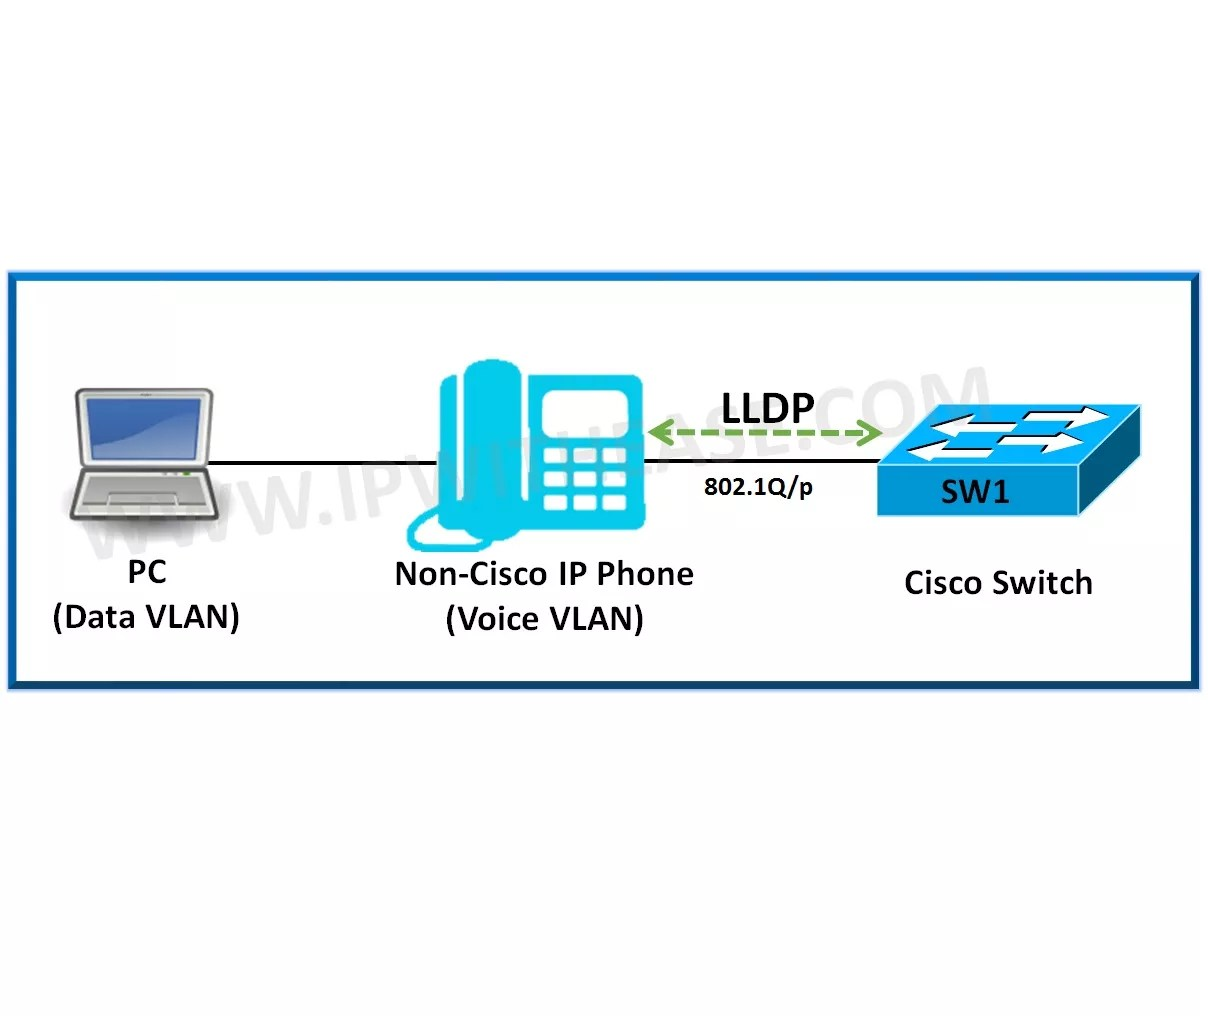 have cisco based networking infrastructure and some other vendor ip  voice setup like avaya etc , inspite of configuring voice vlan on cisco  switches ,we